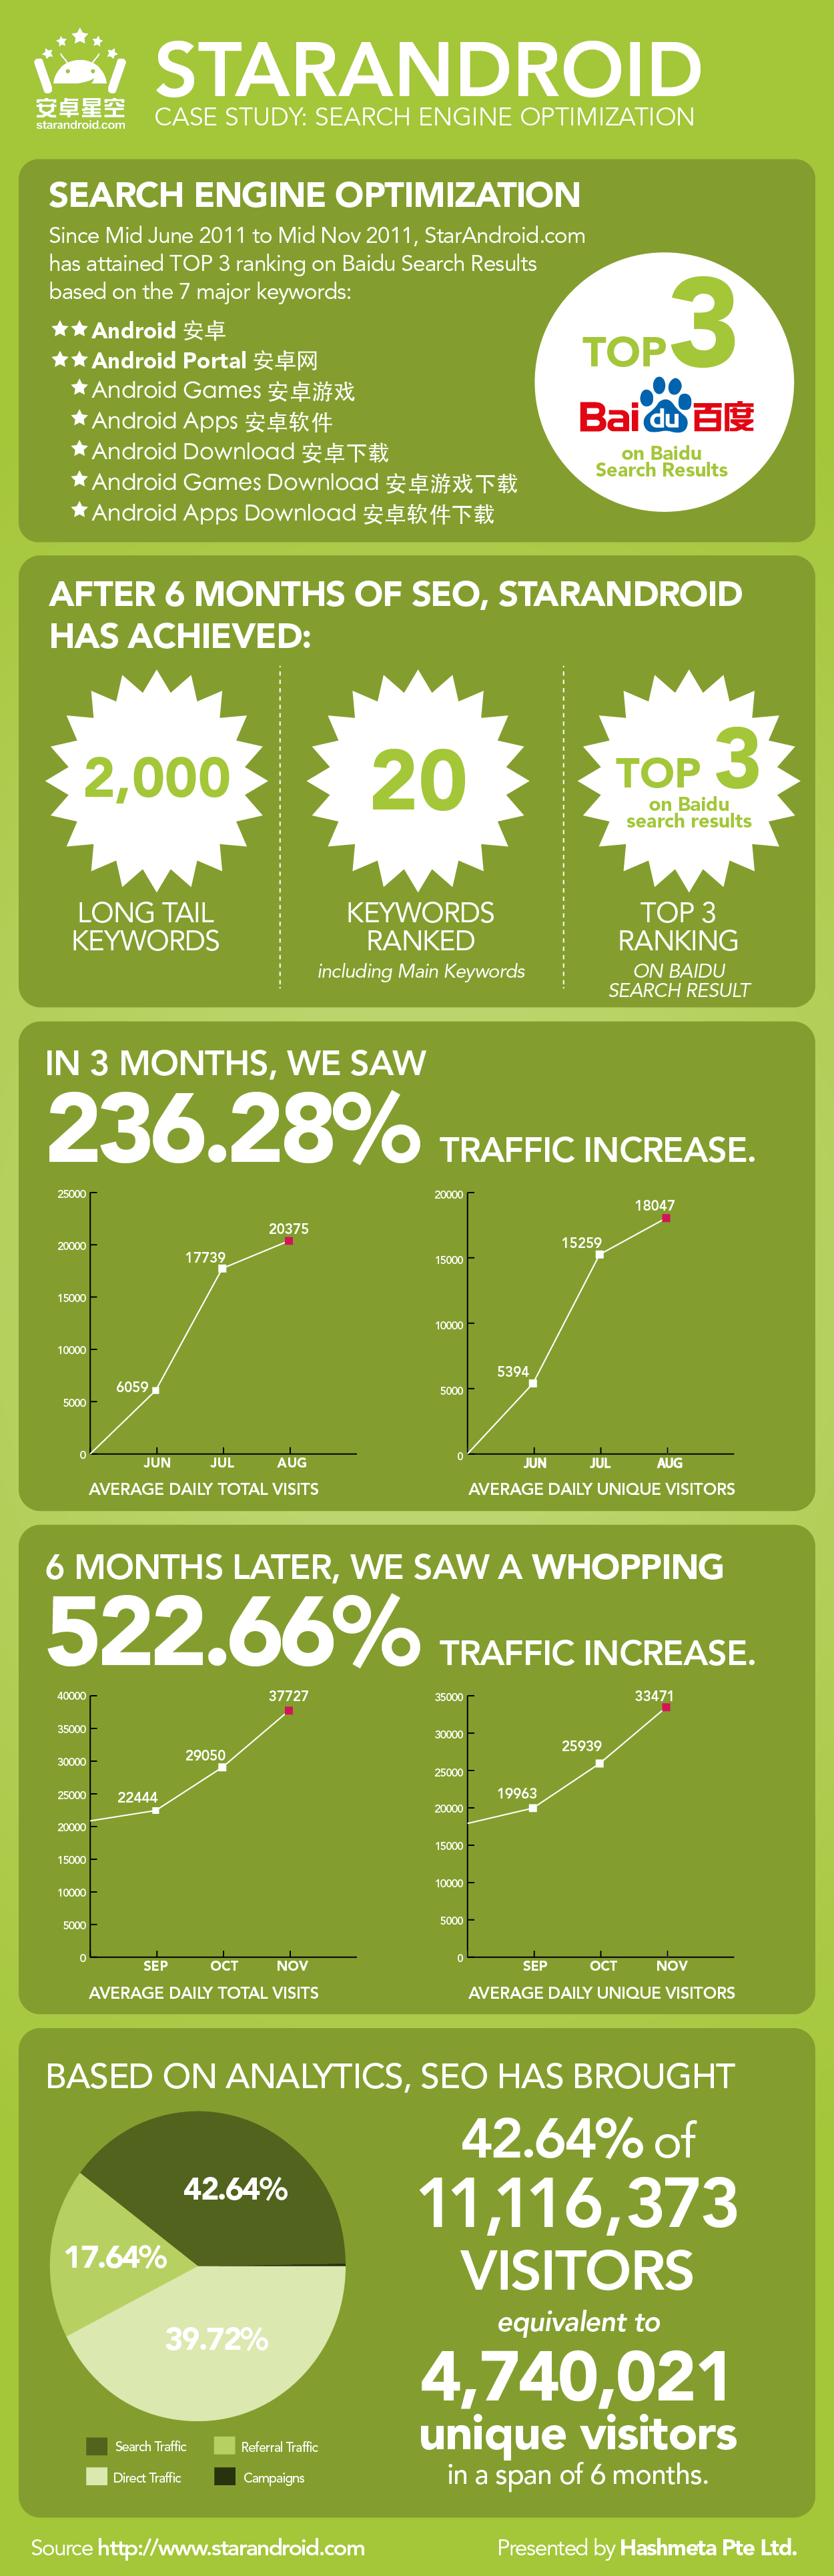 Infographic - Starandroid Marketing Case Study